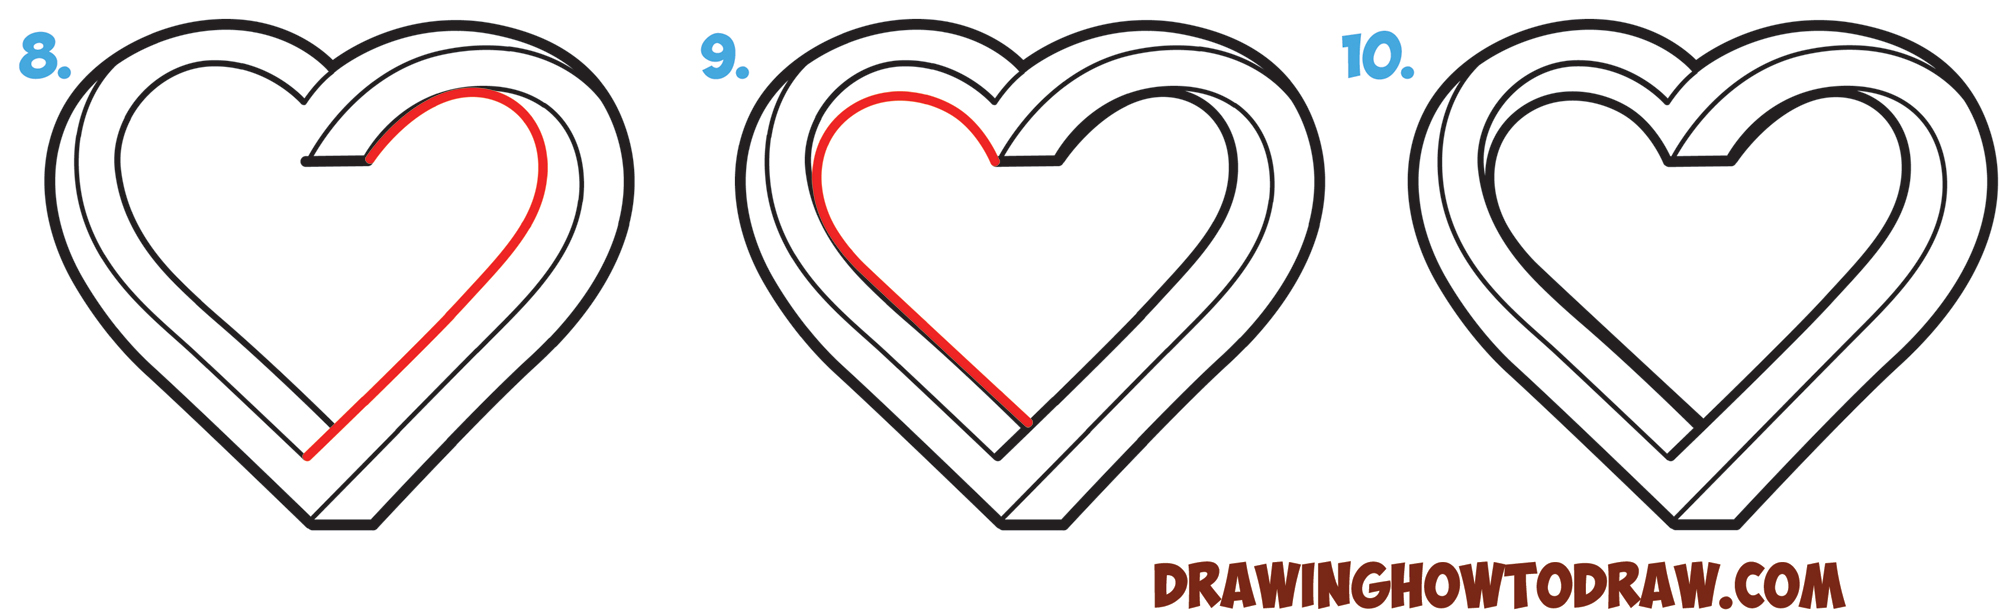 How to draw an impossible heart easy step by step drawing tutorial how to draw impossible hearts simple steps drawing lesson for kids and for beginners biocorpaavc Choice Image